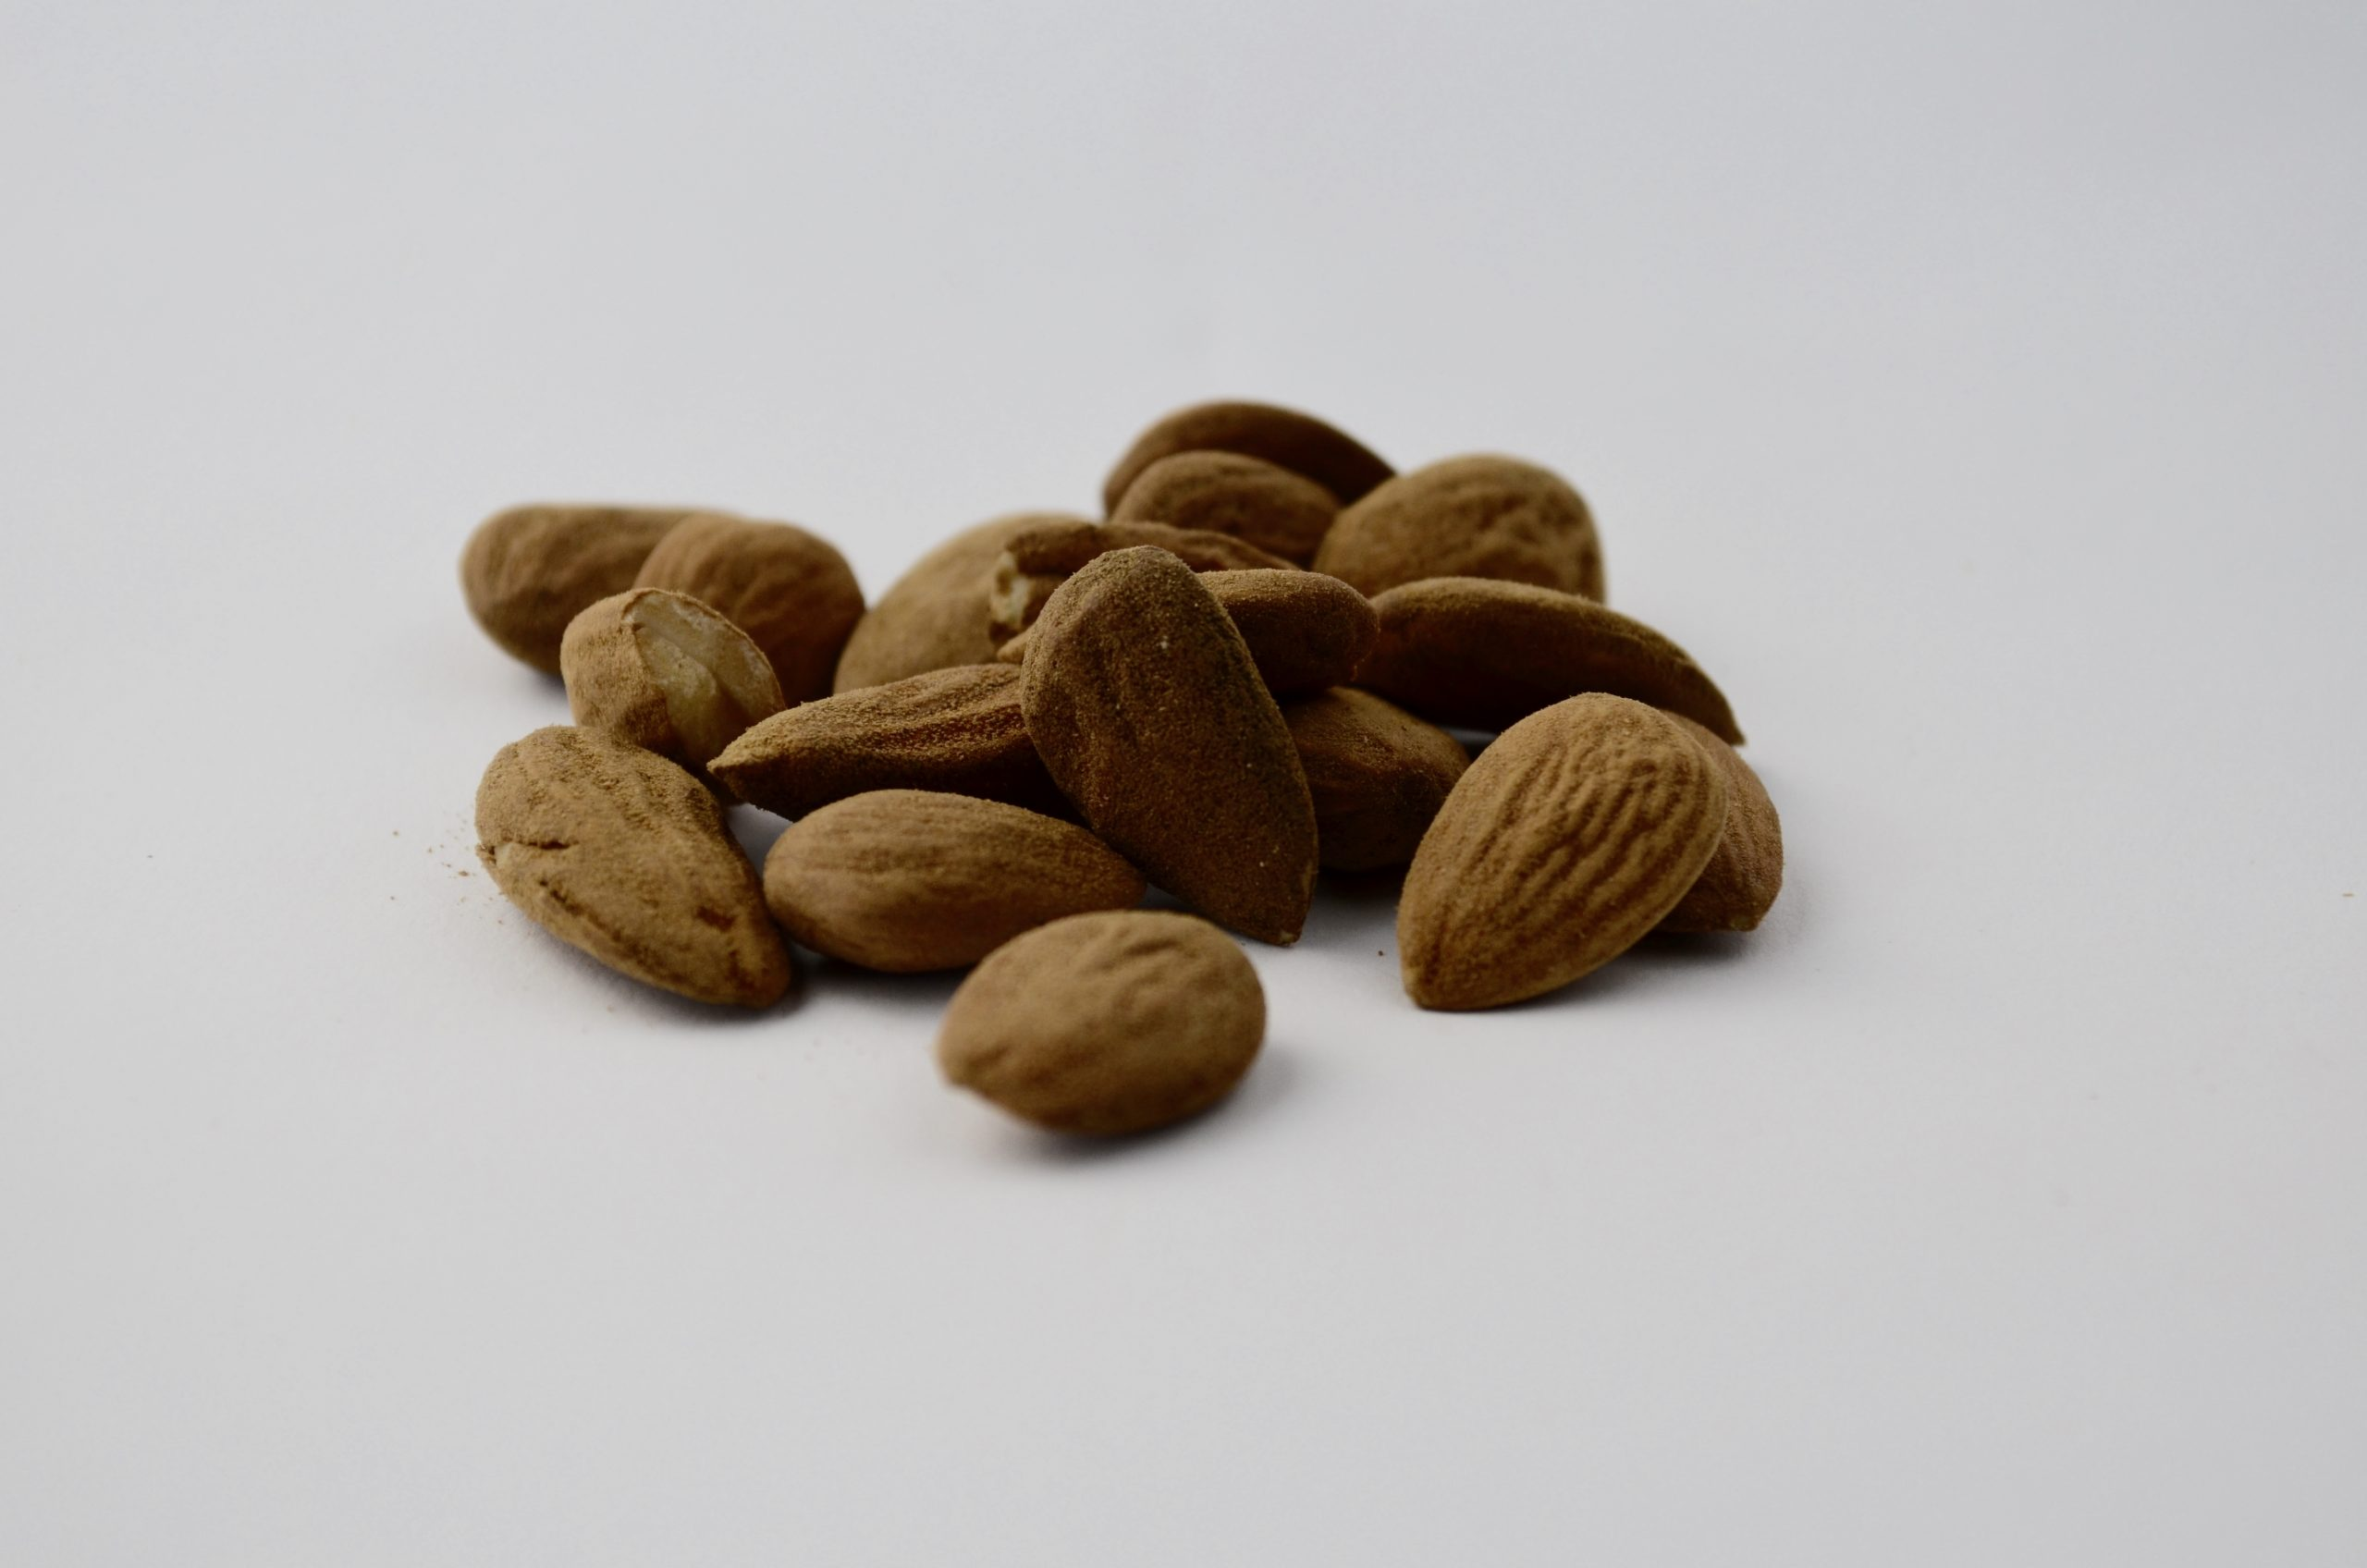 This is an image of our loose almonds